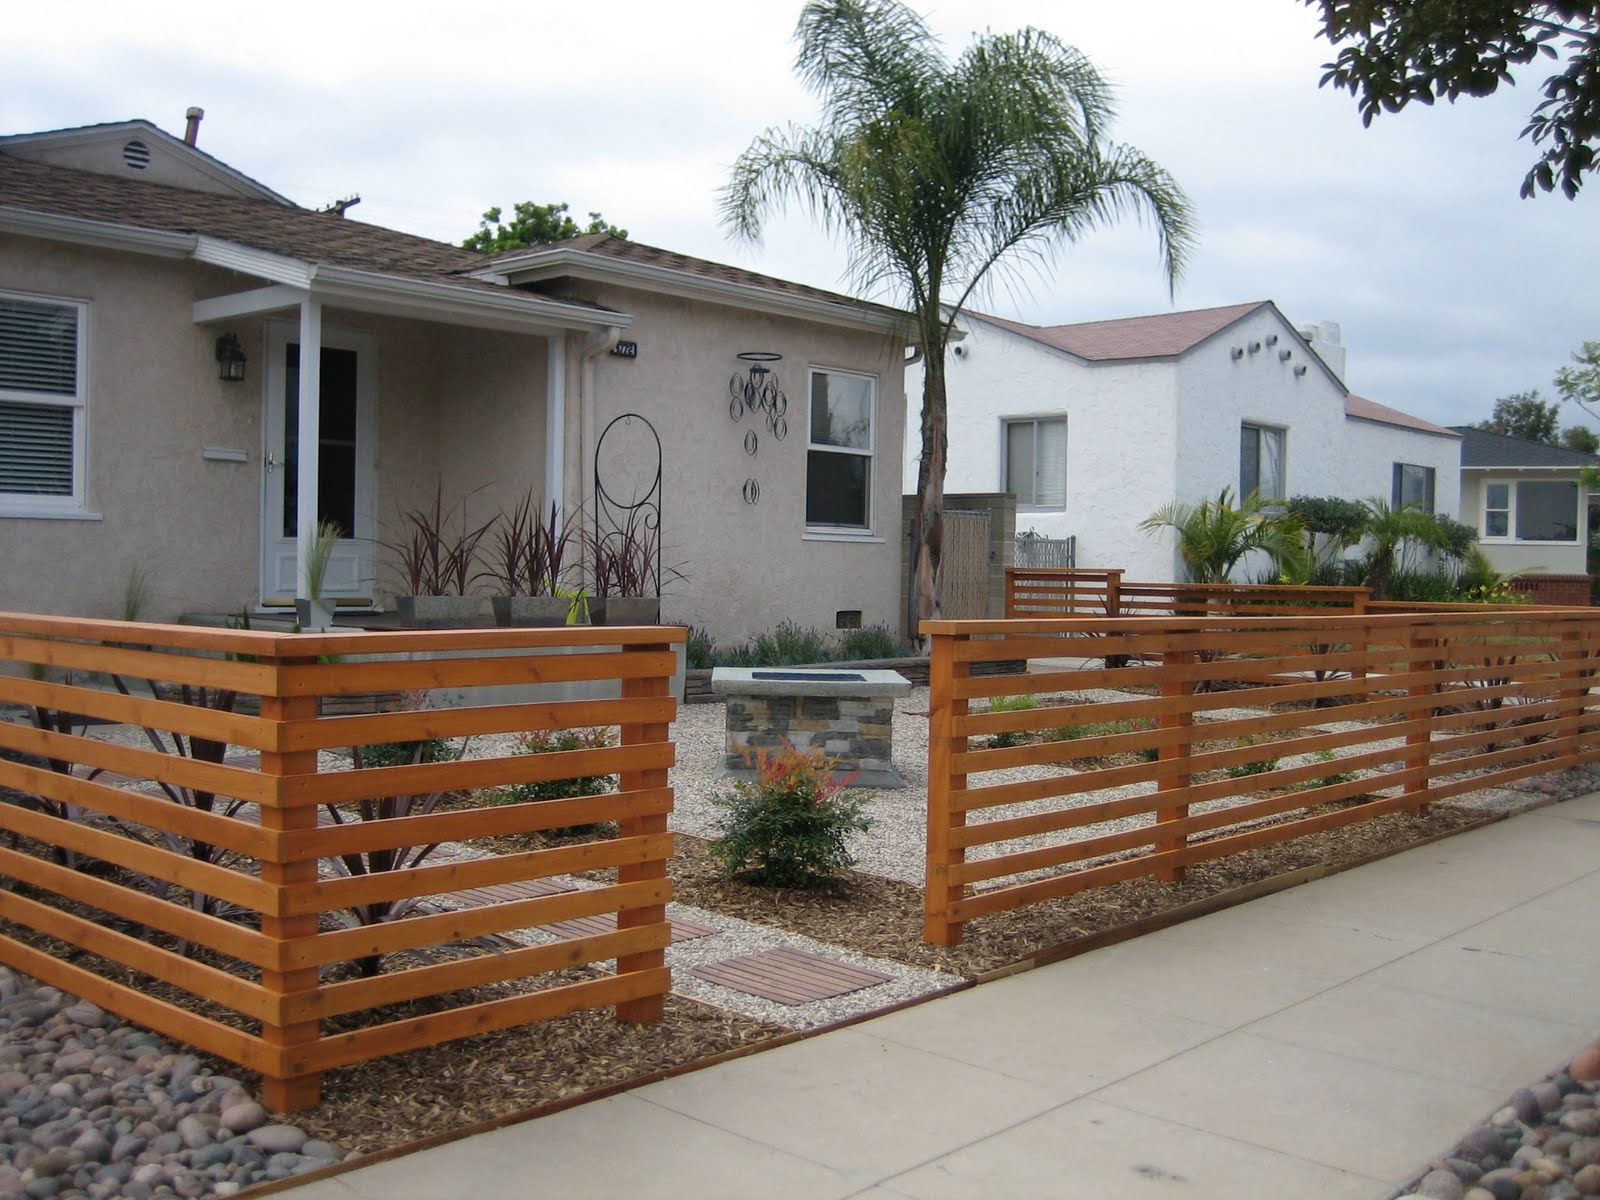 Van Nuis Design: Project Profile: Sustainable, Drought